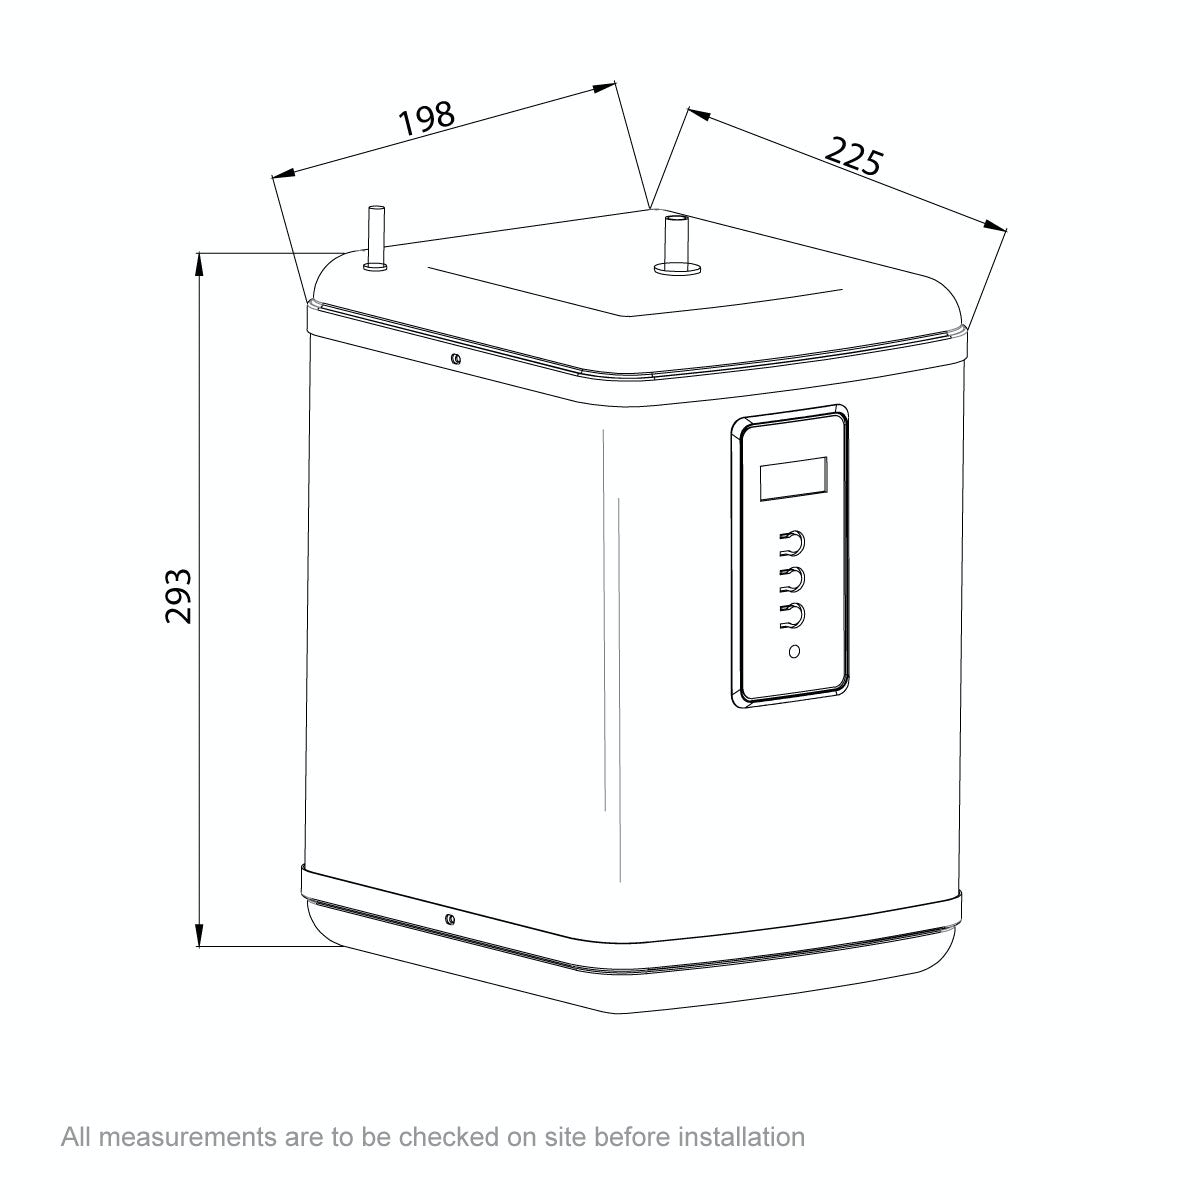 Dimensions for Ready Hot Two way boiling water tap with digital boiler